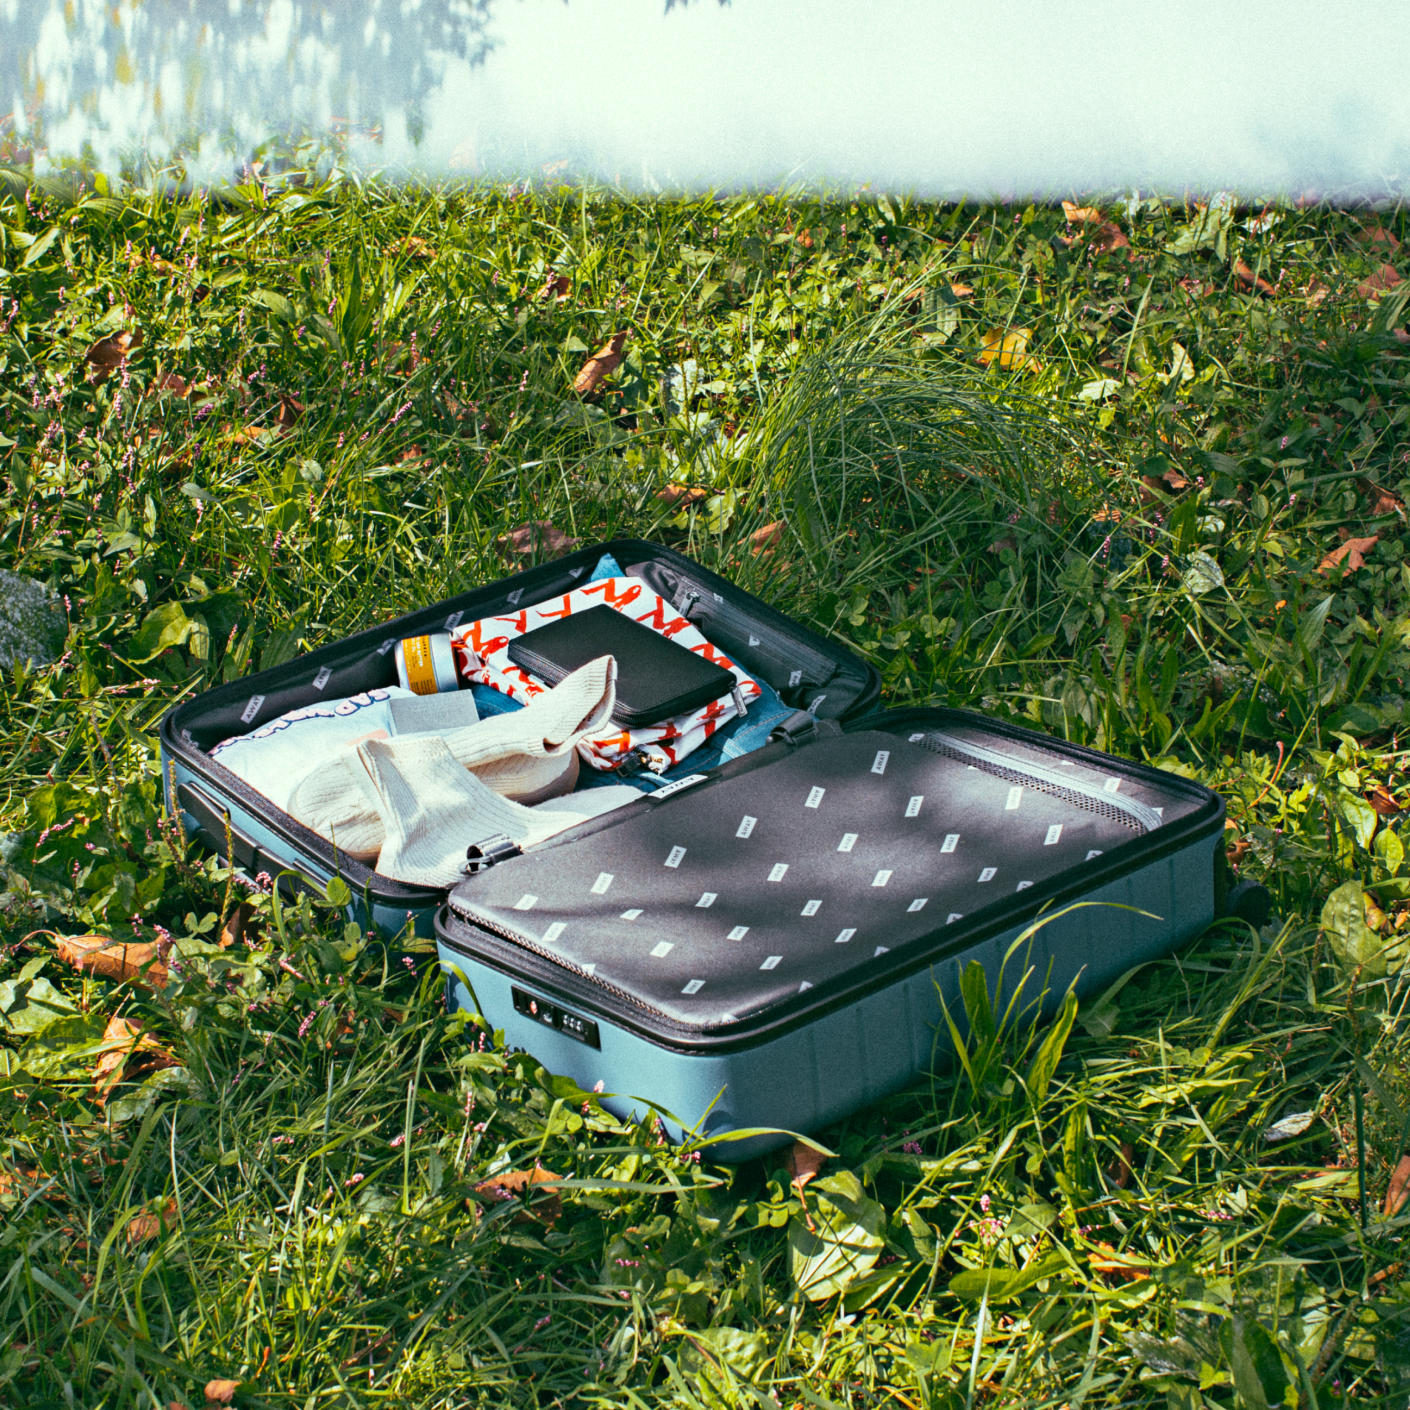 An open blue carry-on suitcase open in the middle of a grassy ground packed with internal compression showing.